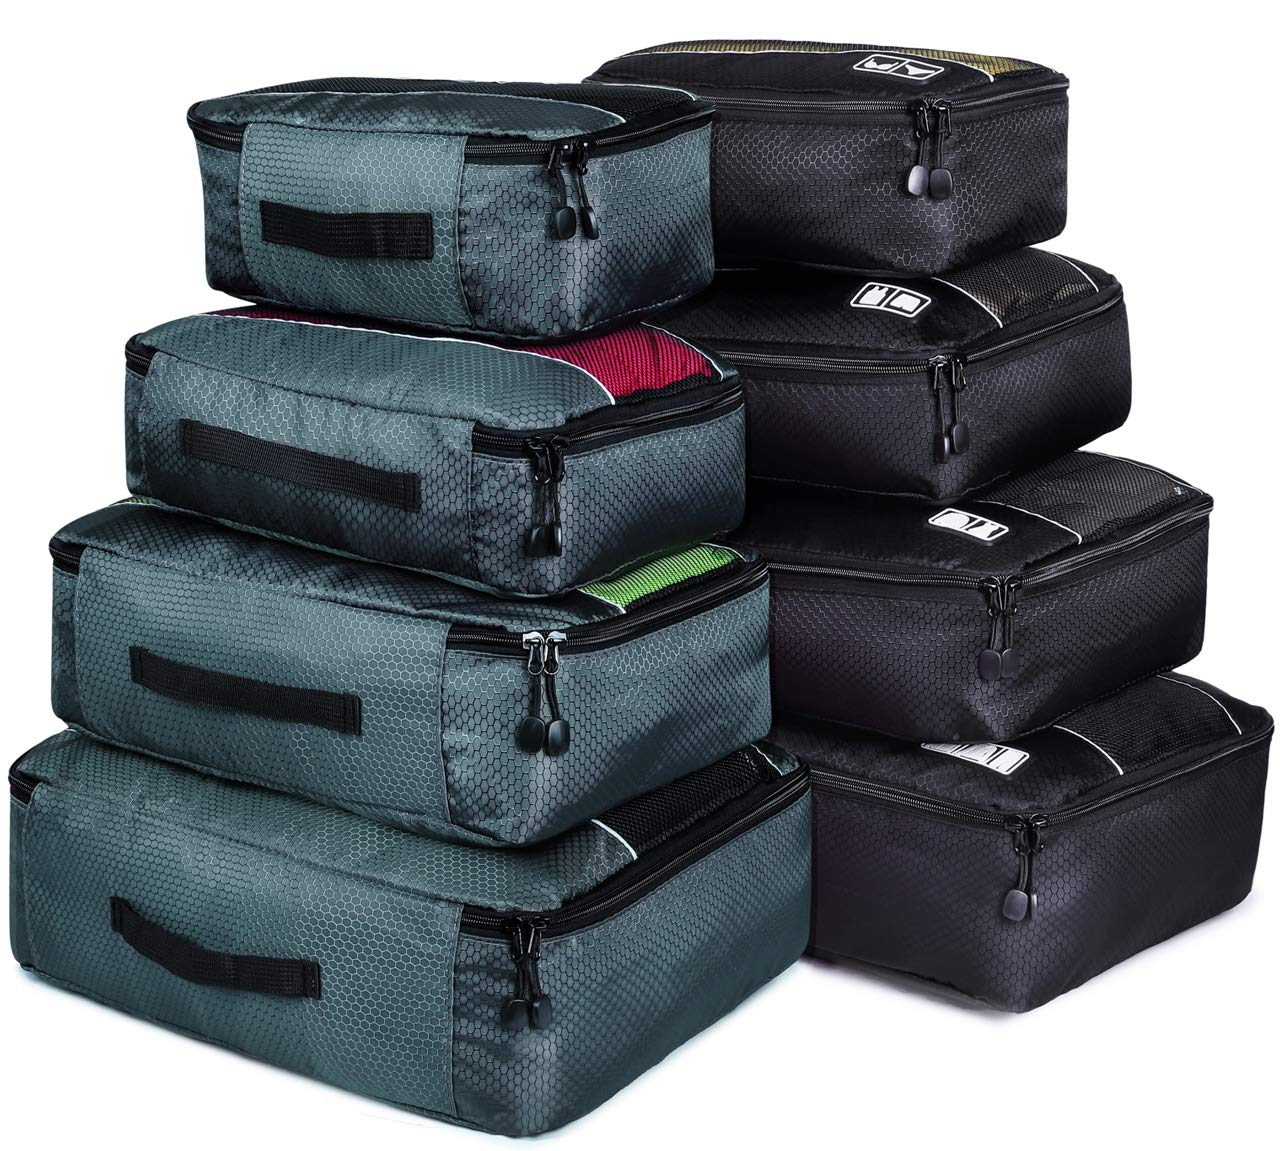 8 Set Packing Cubes, Travel Luggage Bags Organizers Mixed Color Set(Grey/Black)